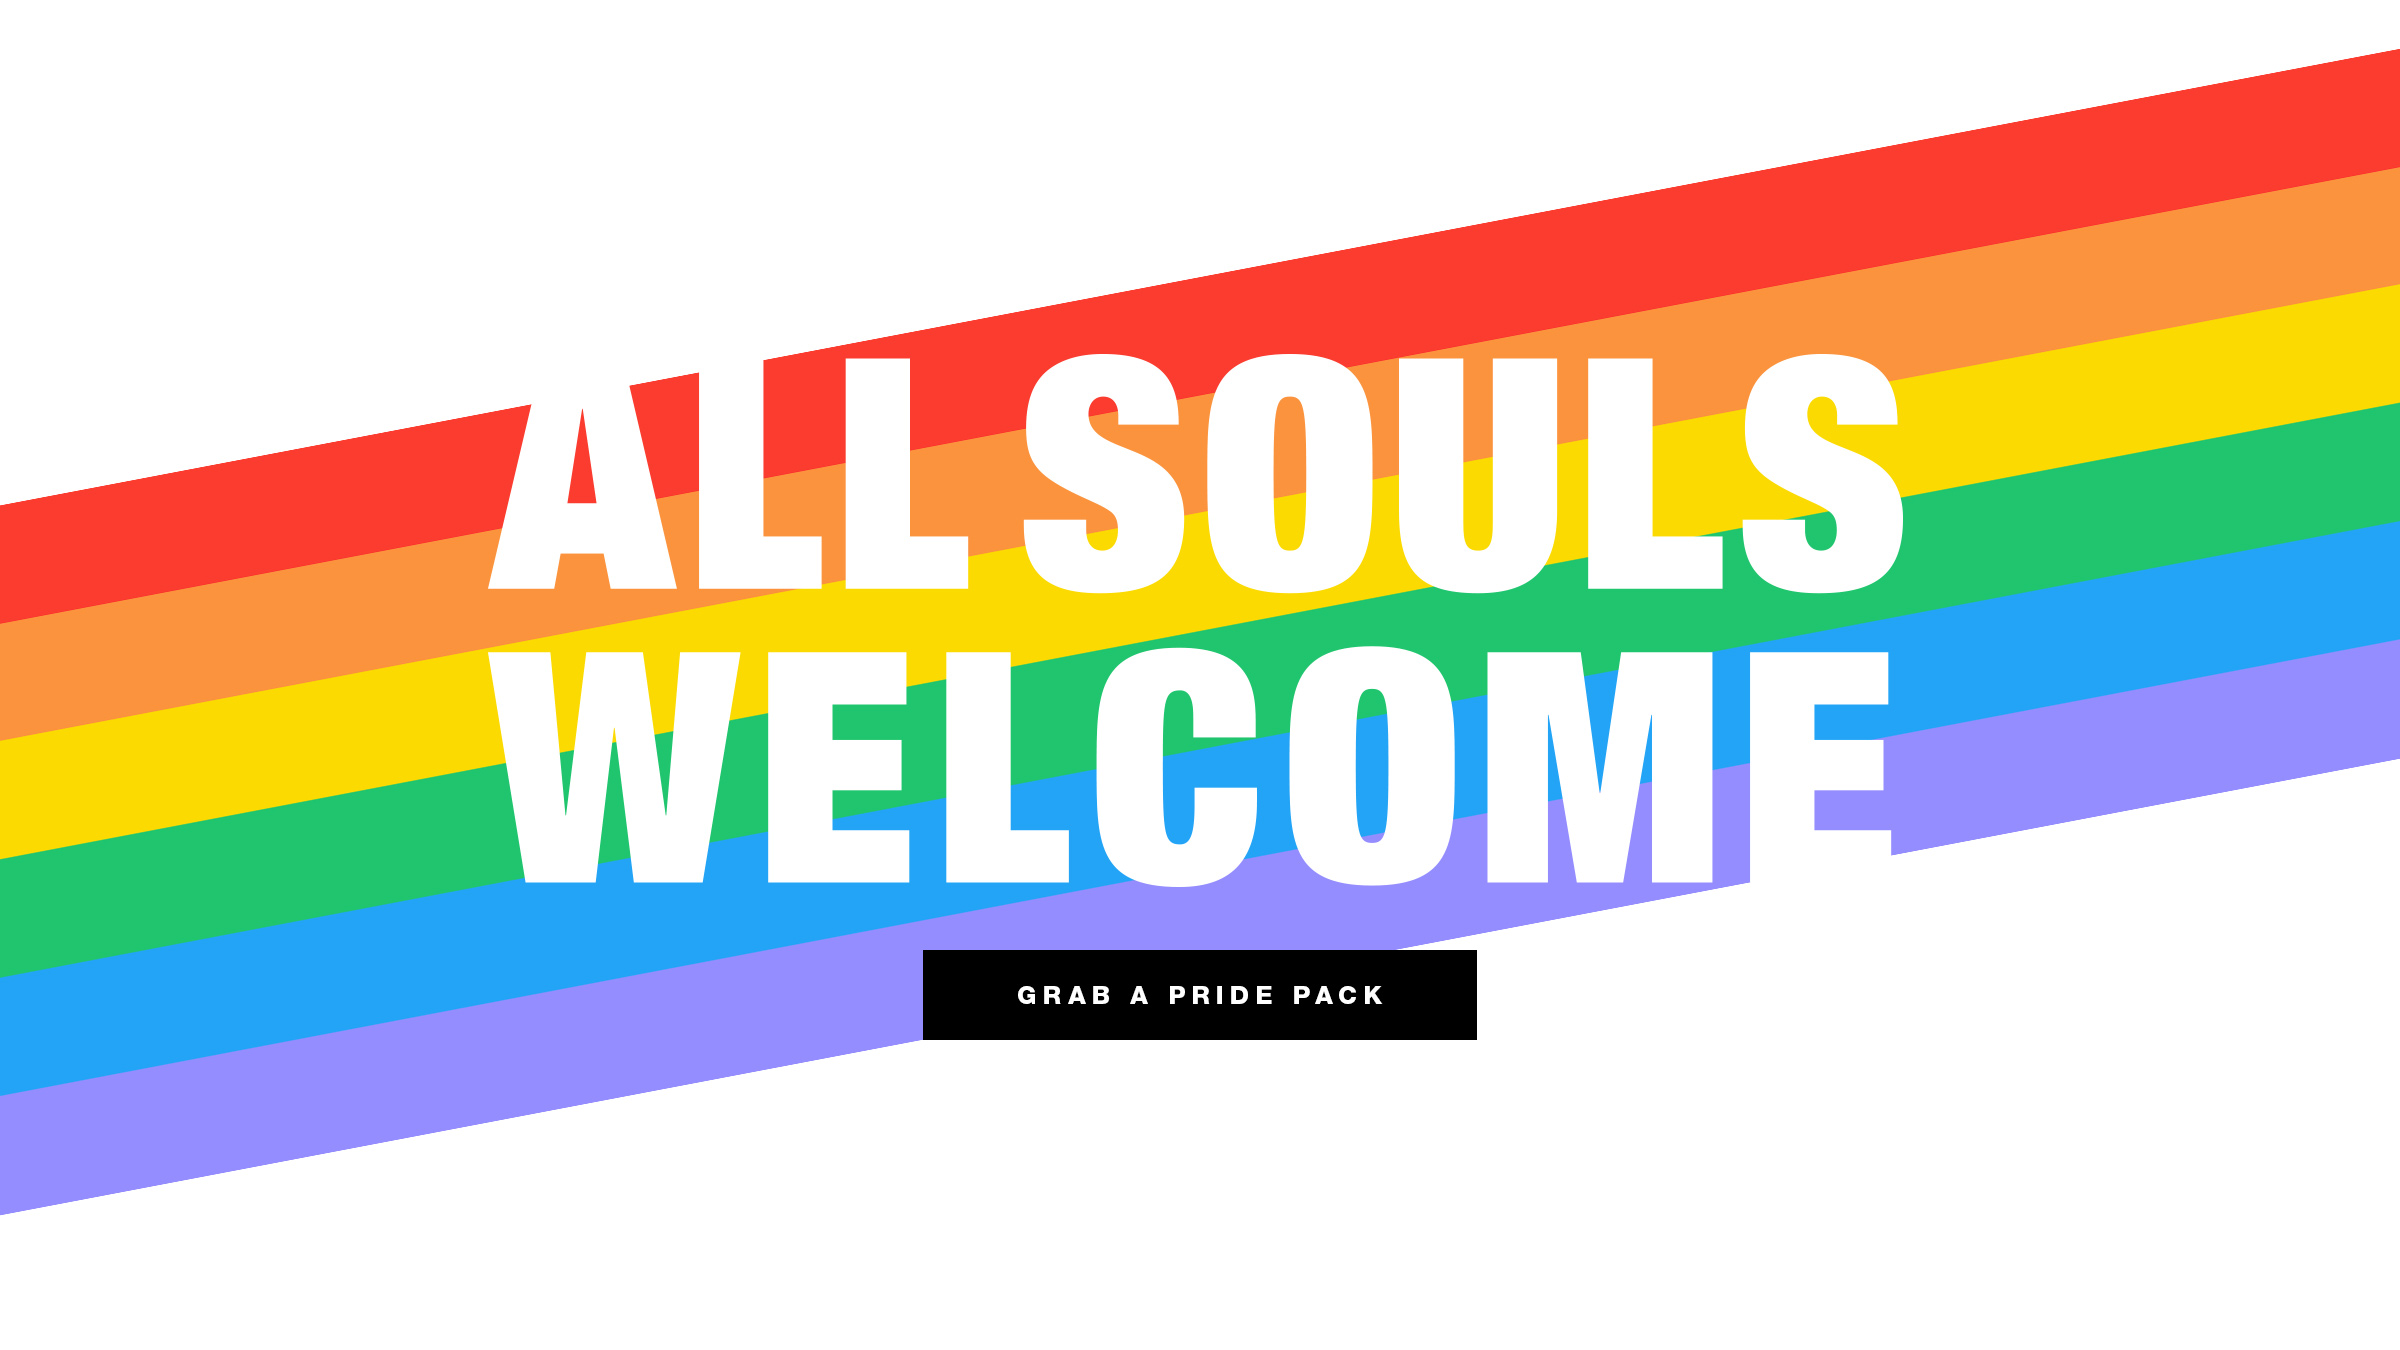 All Souls Welcome - Buy A Pride Pack